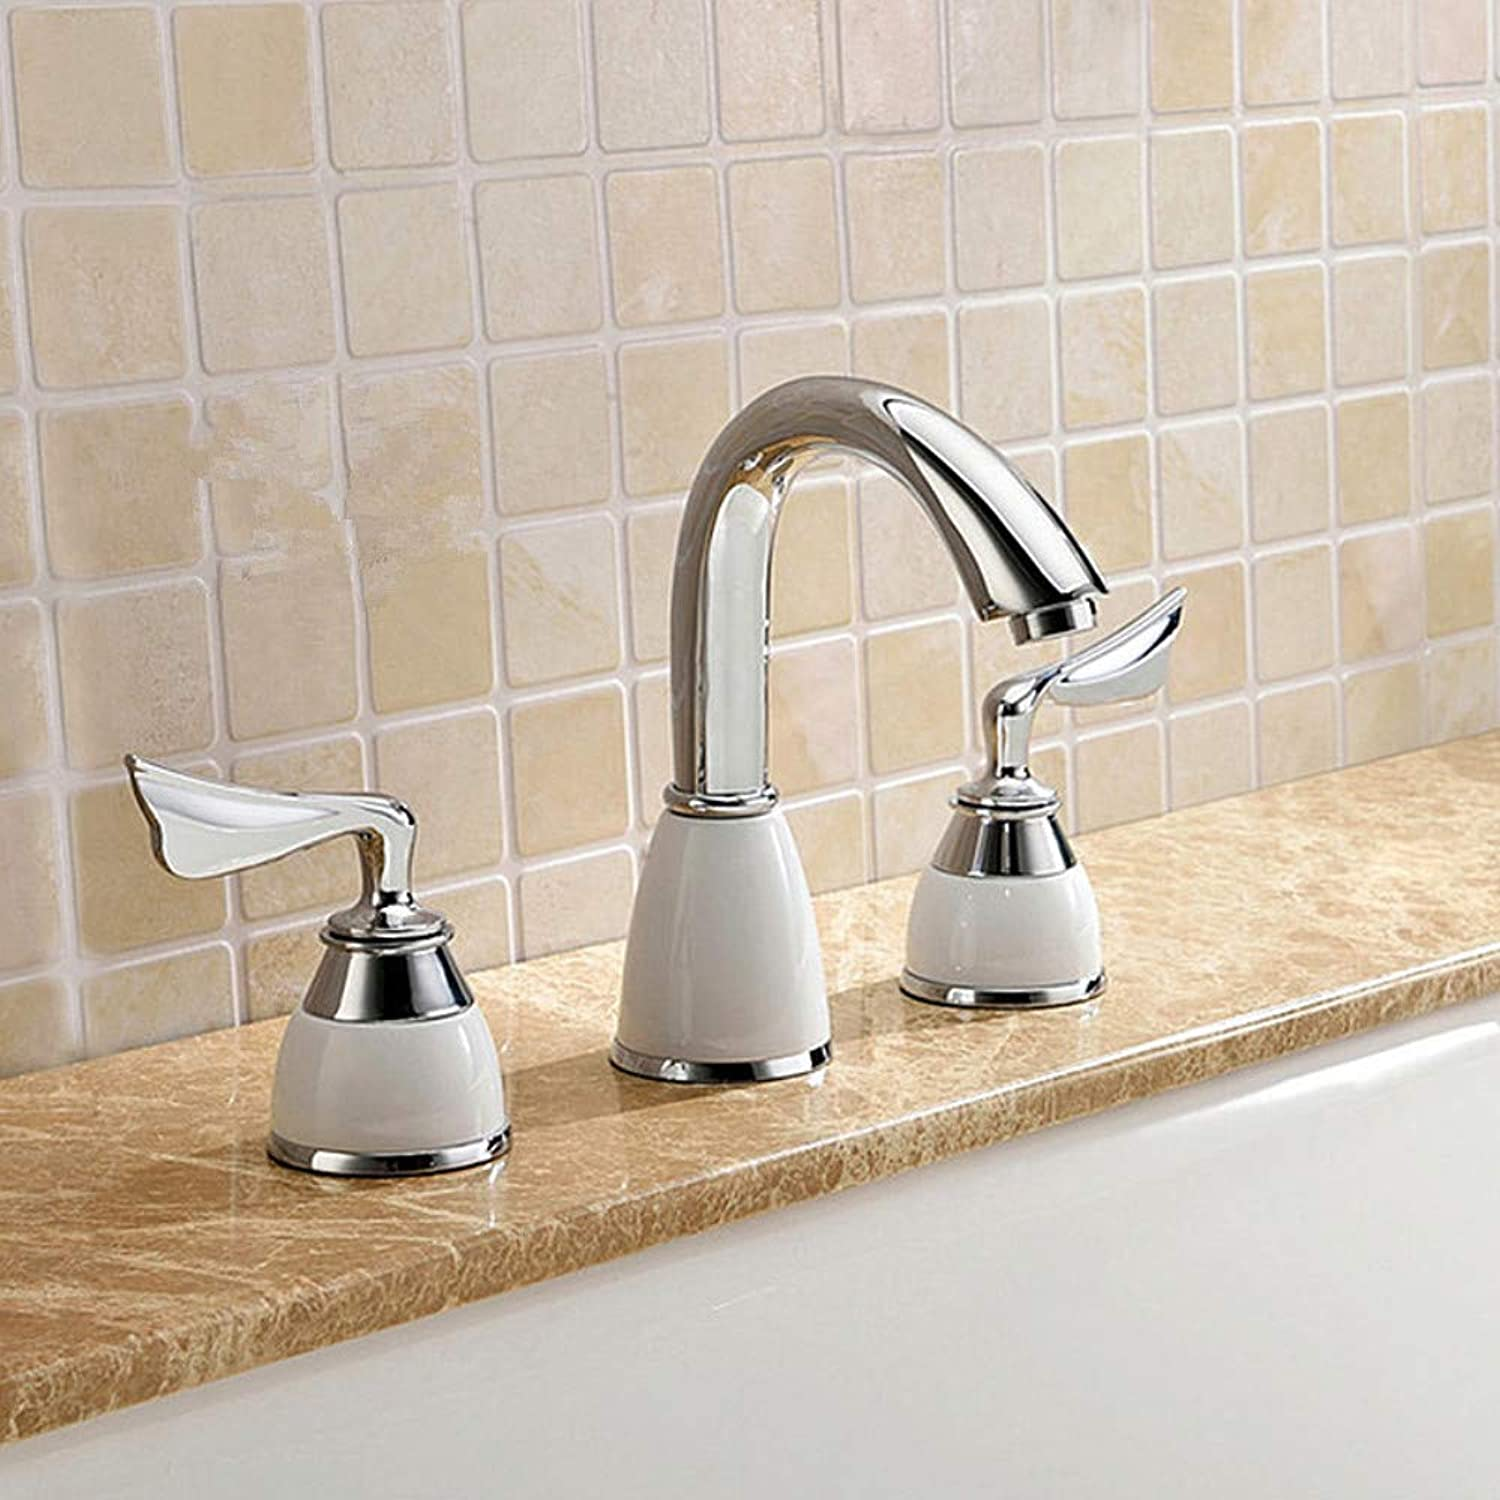 Bathroom Sink Tap High Quality Original Unique Design Brass Chrome 3 Hole Bathtub Faucet Bath Shower Mixer Taps Bathroom Faucet